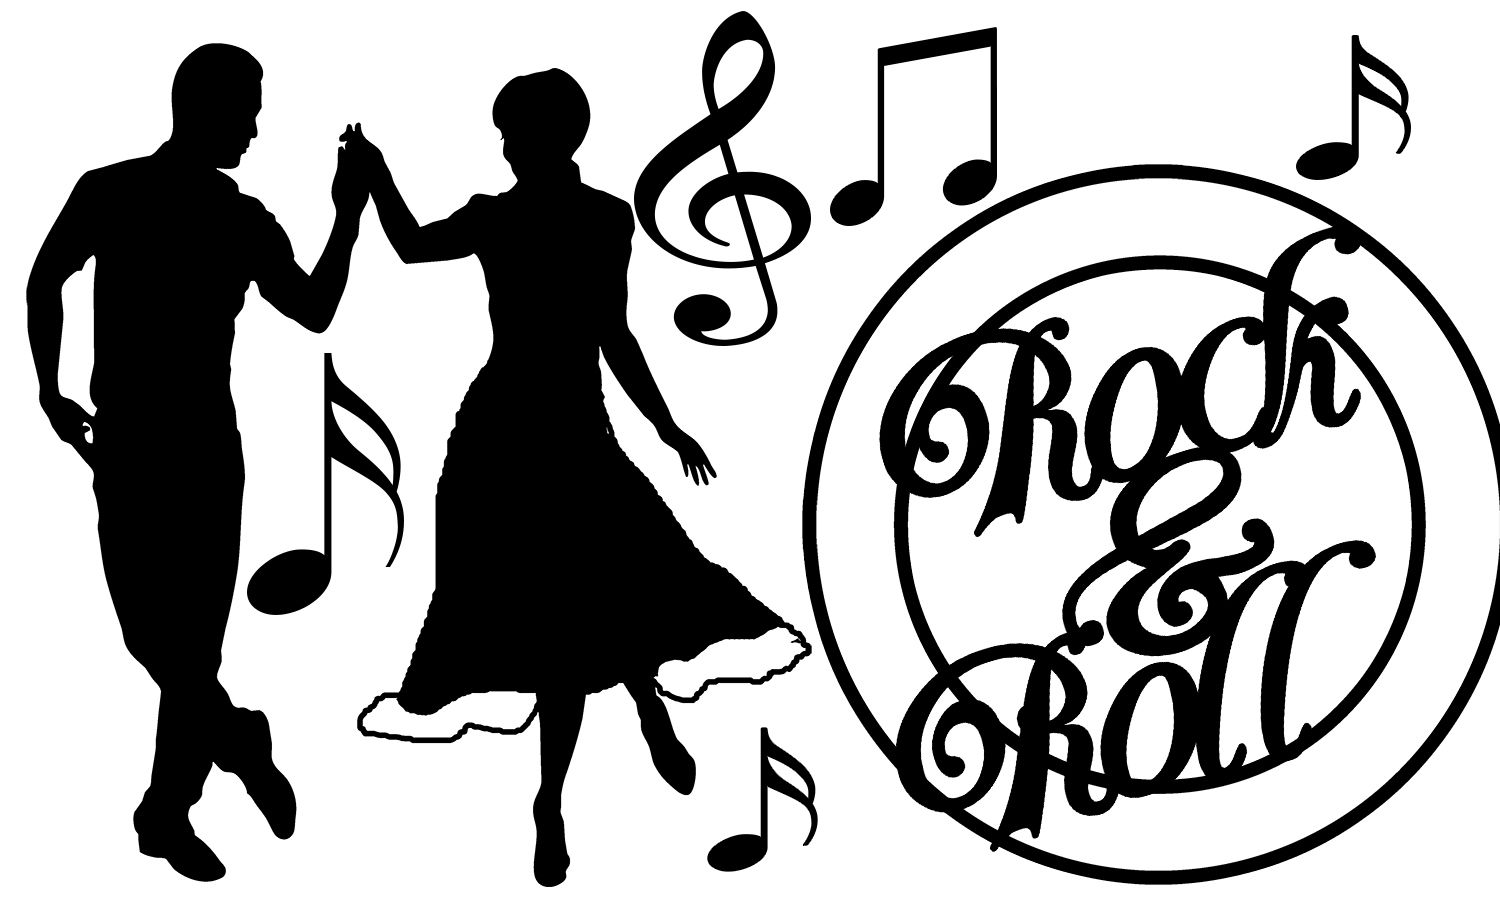 PICTURES OF ROCK N ROLL DANCERS FOR LOGO.